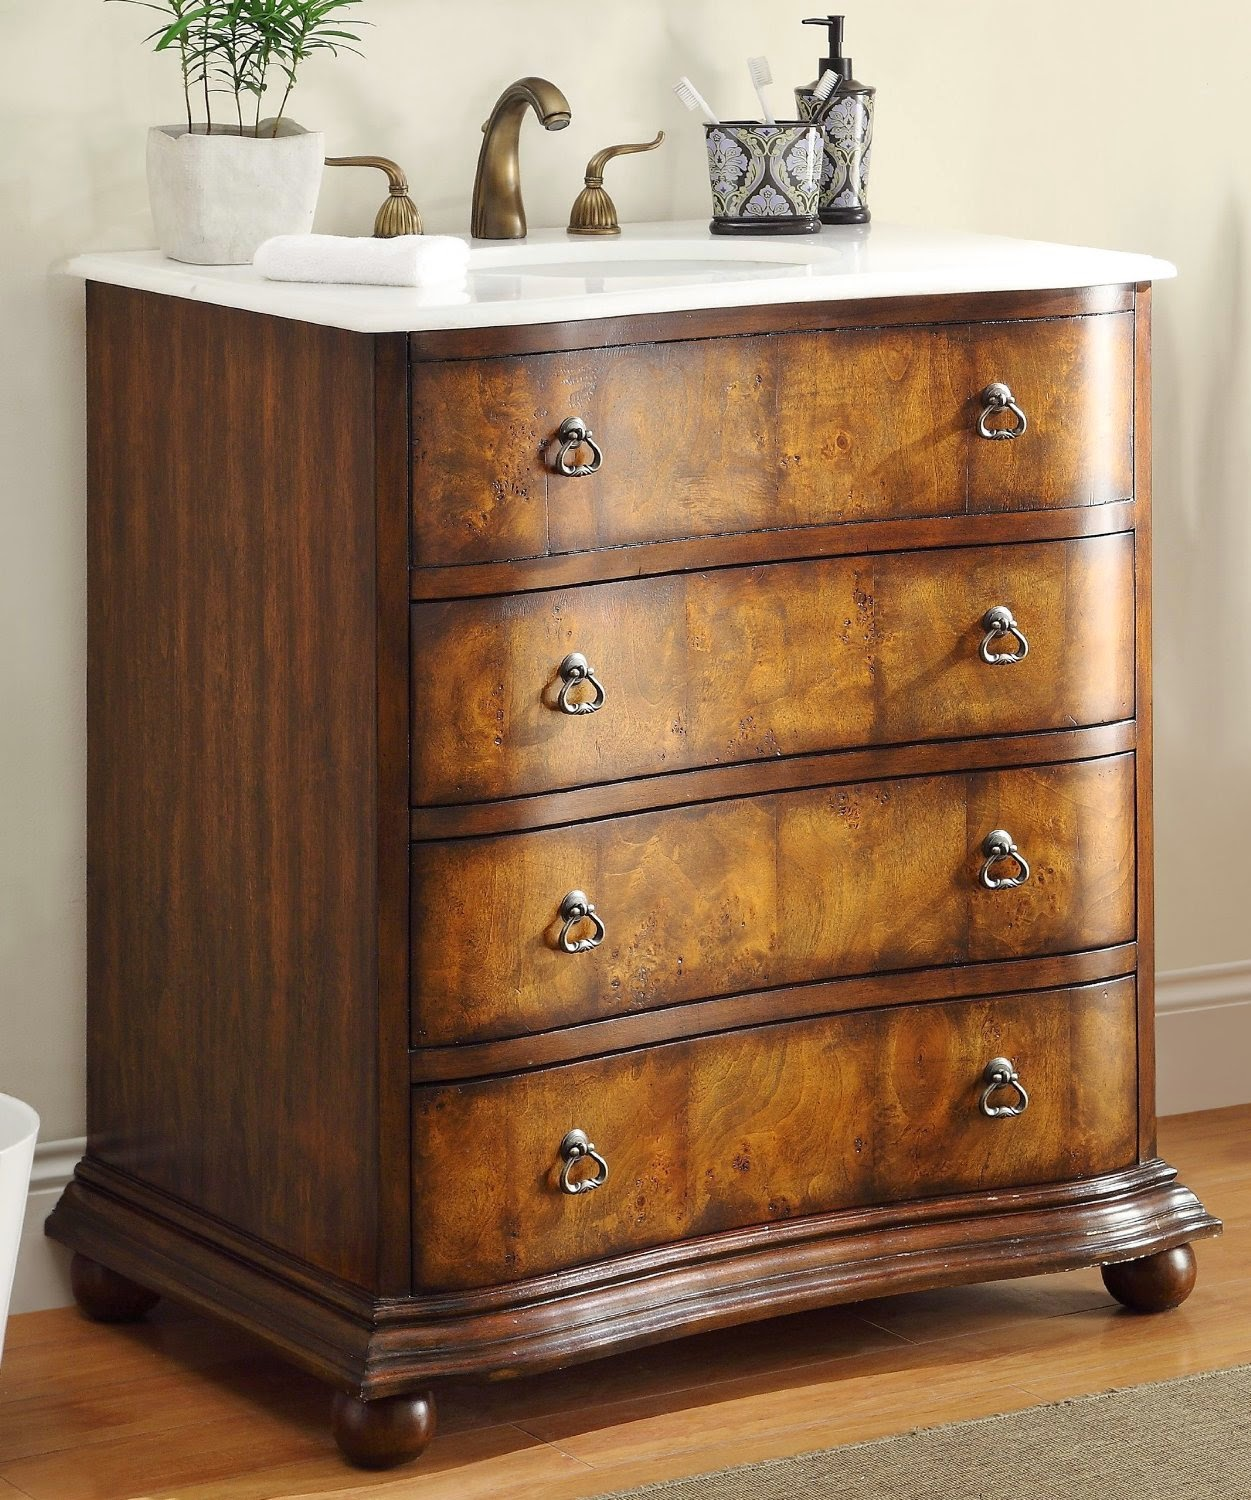 Antique Bathroom Vanity Cabinet: Discount Bathroom Vanities: Antique Bathroom Vanities